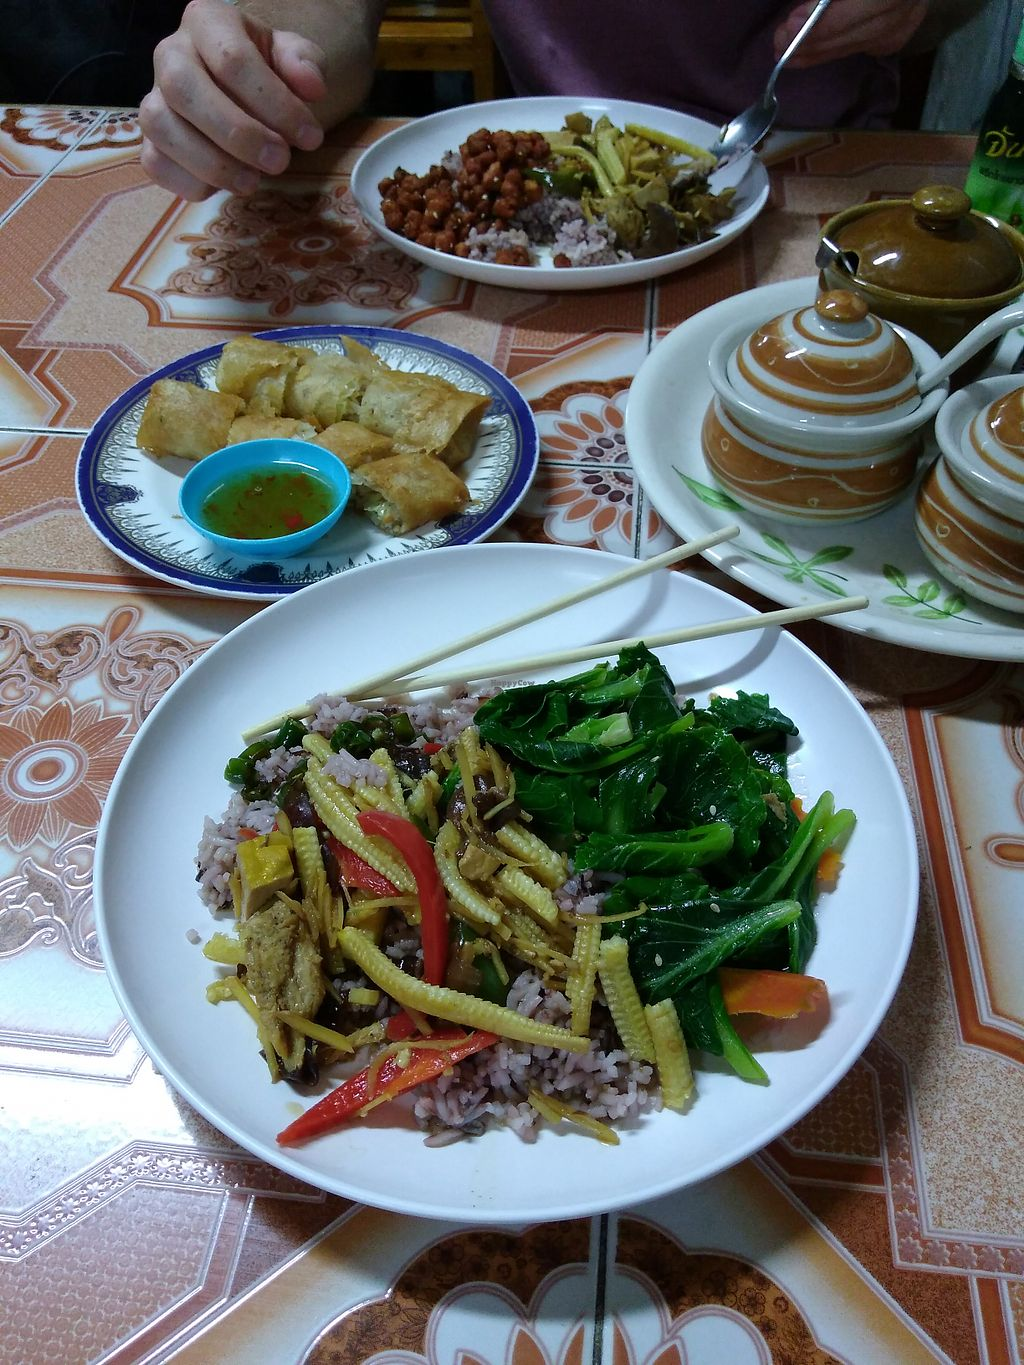 """Photo of Ming Kwan  by <a href=""""/members/profile/emzie1983"""">emzie1983</a> <br/>Lunch buffet rice with tofu&veg,and greens (30 baht), plus spring rolls (10 each) <br/> May 1, 2018  - <a href='/contact/abuse/image/28009/393428'>Report</a>"""